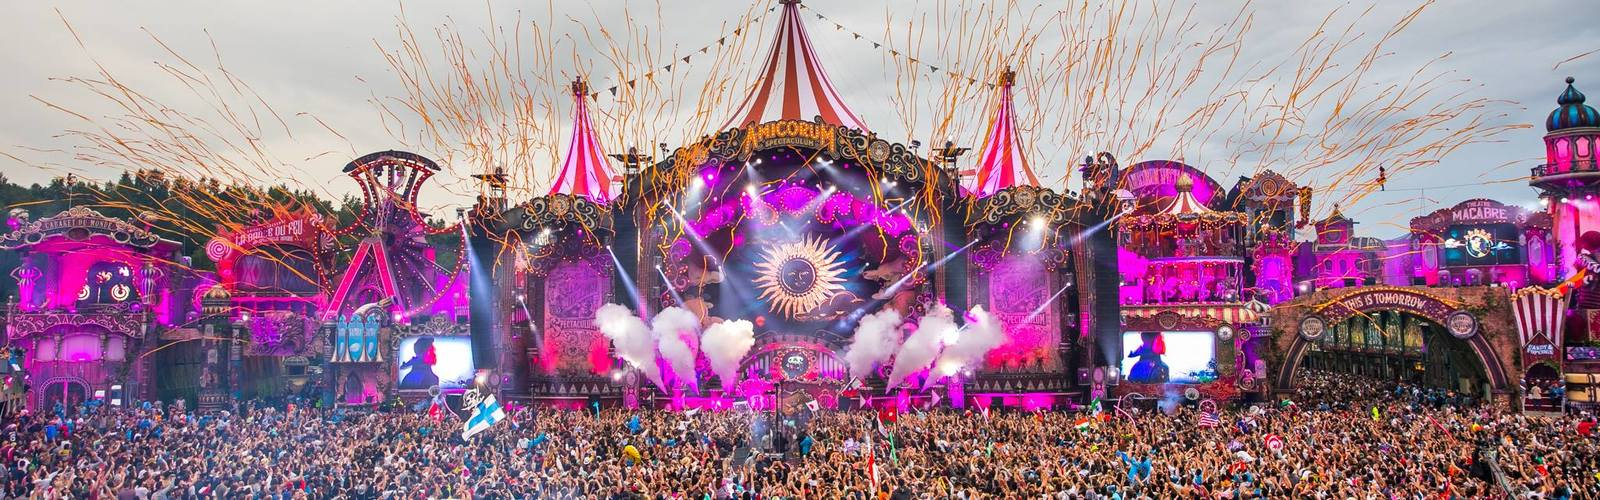 Tomorrowland Announce 2018 Dates and New Theme